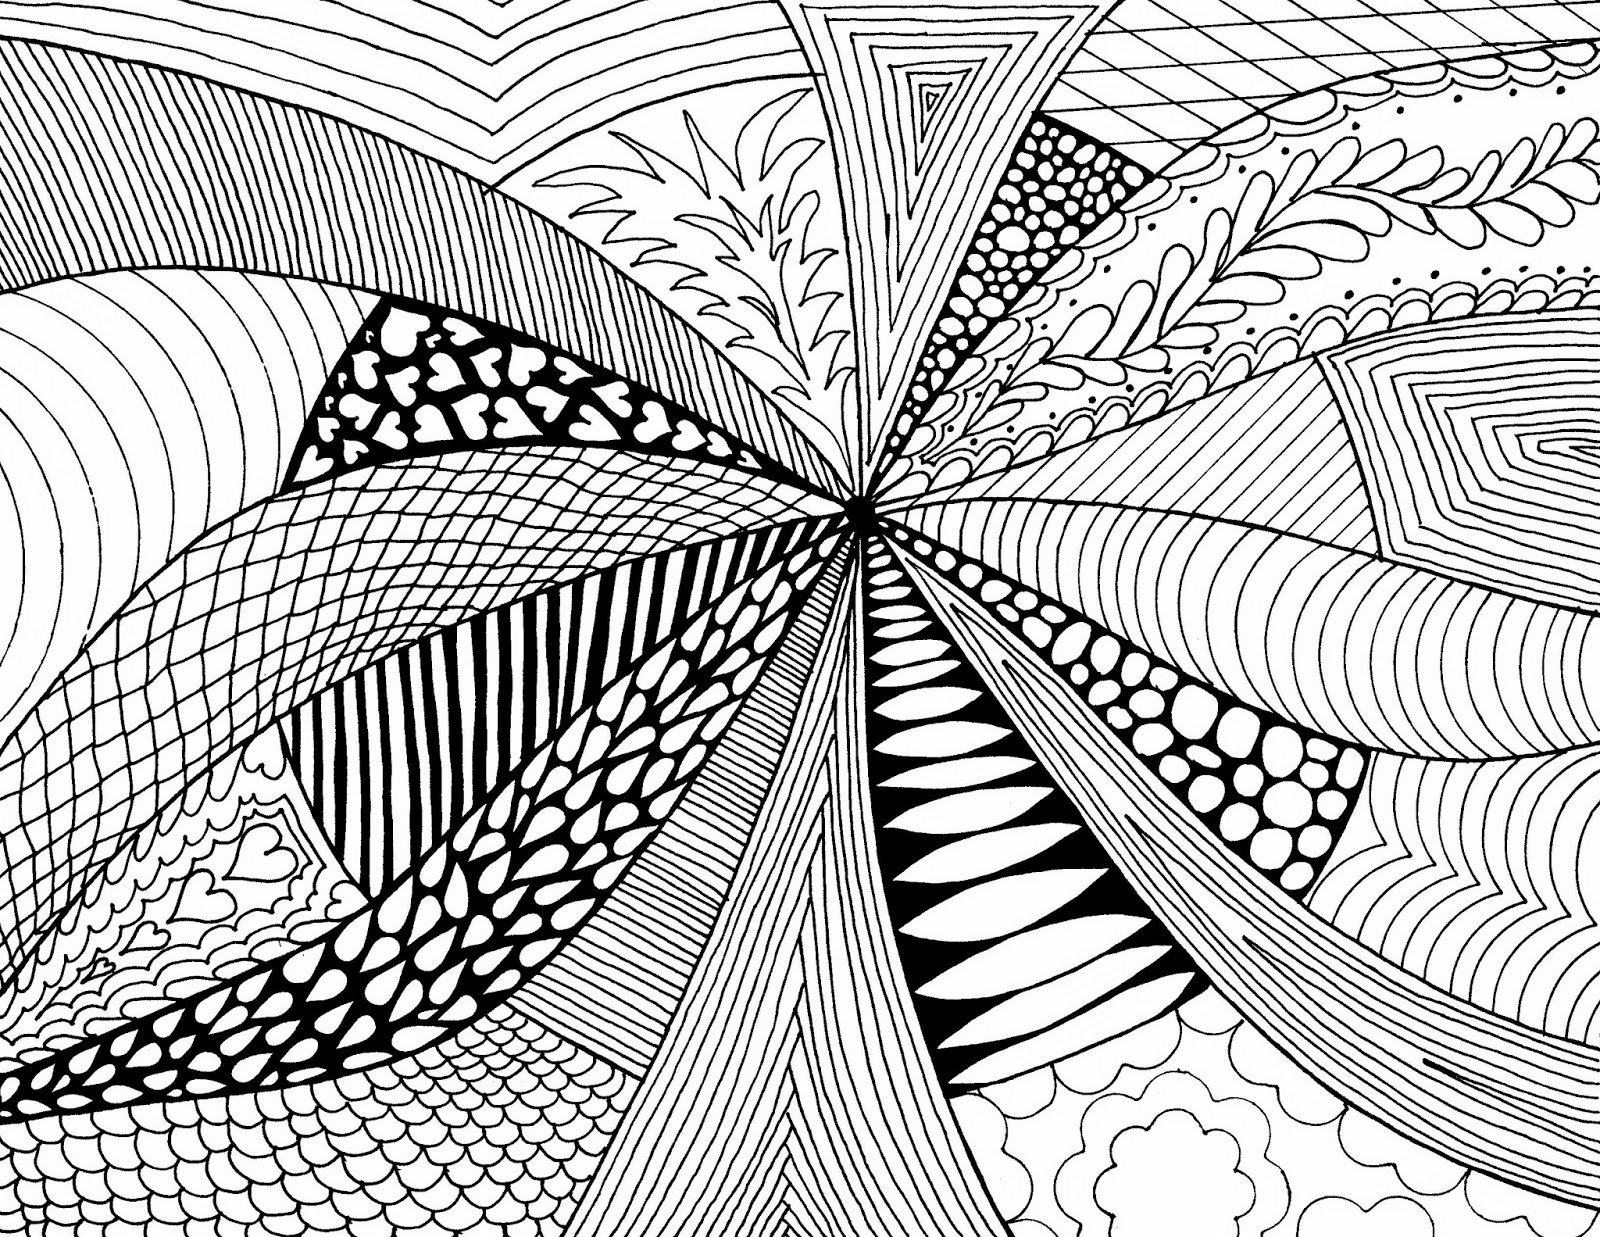 Straight Line Drawing Easy : Examples of abstract art drawings in simple design hd